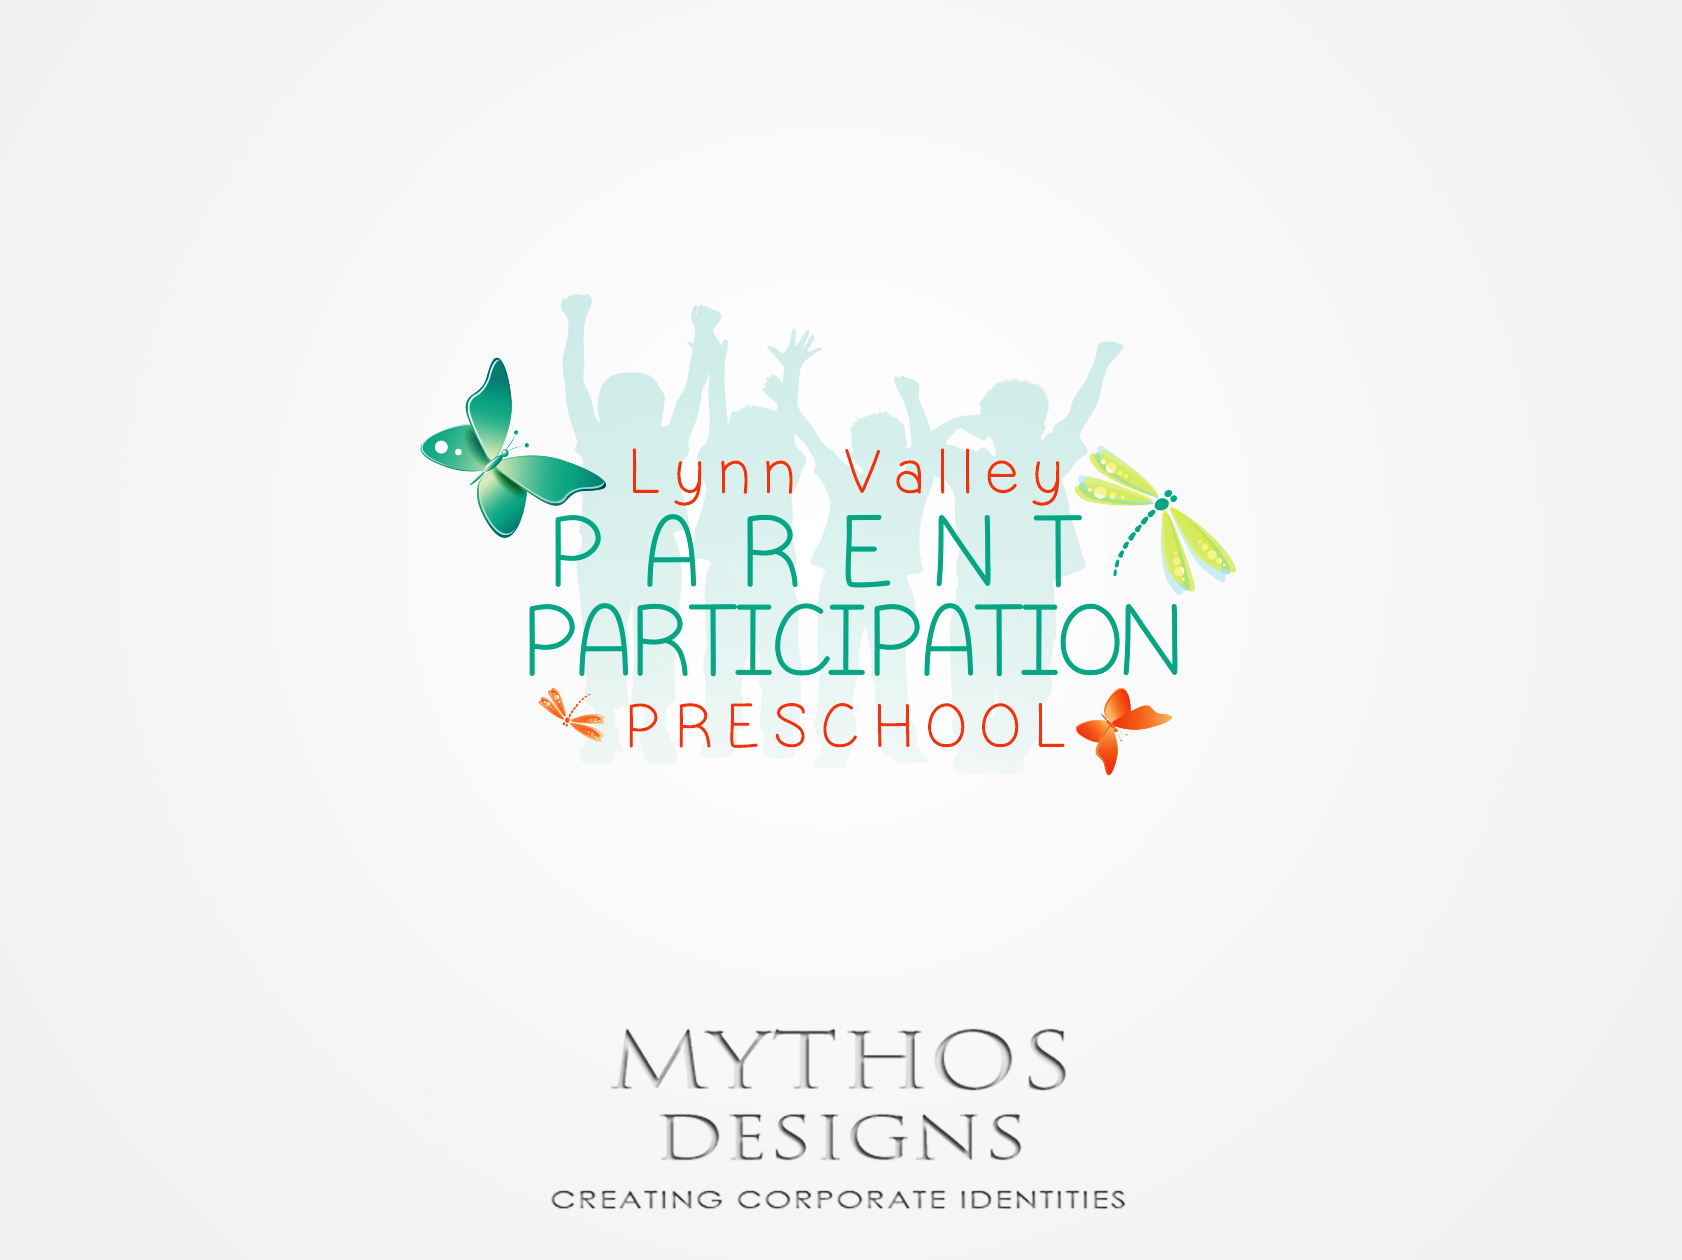 Logo Design by Mythos Designs - Entry No. 41 in the Logo Design Contest New Logo Design for Lynn Valley Parent Participation Preschool.